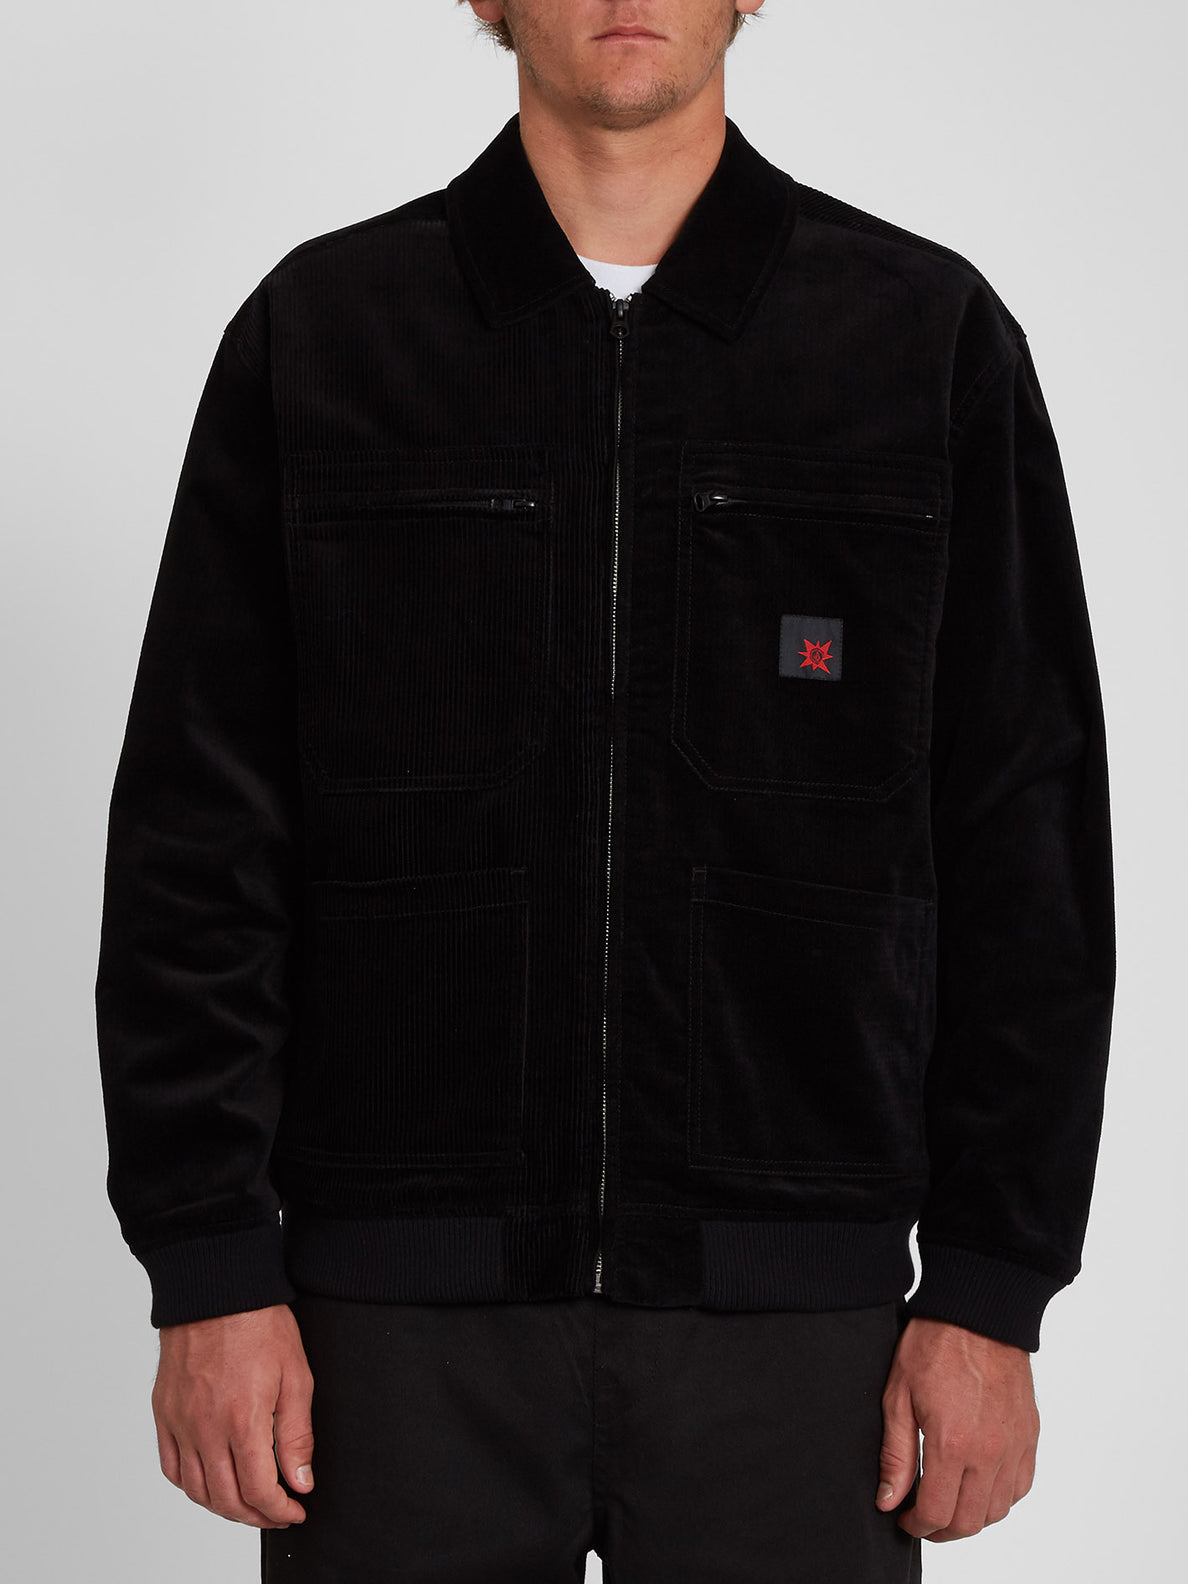 Averted Visions Jacket - BLACK (A1642007_BLK) [F]